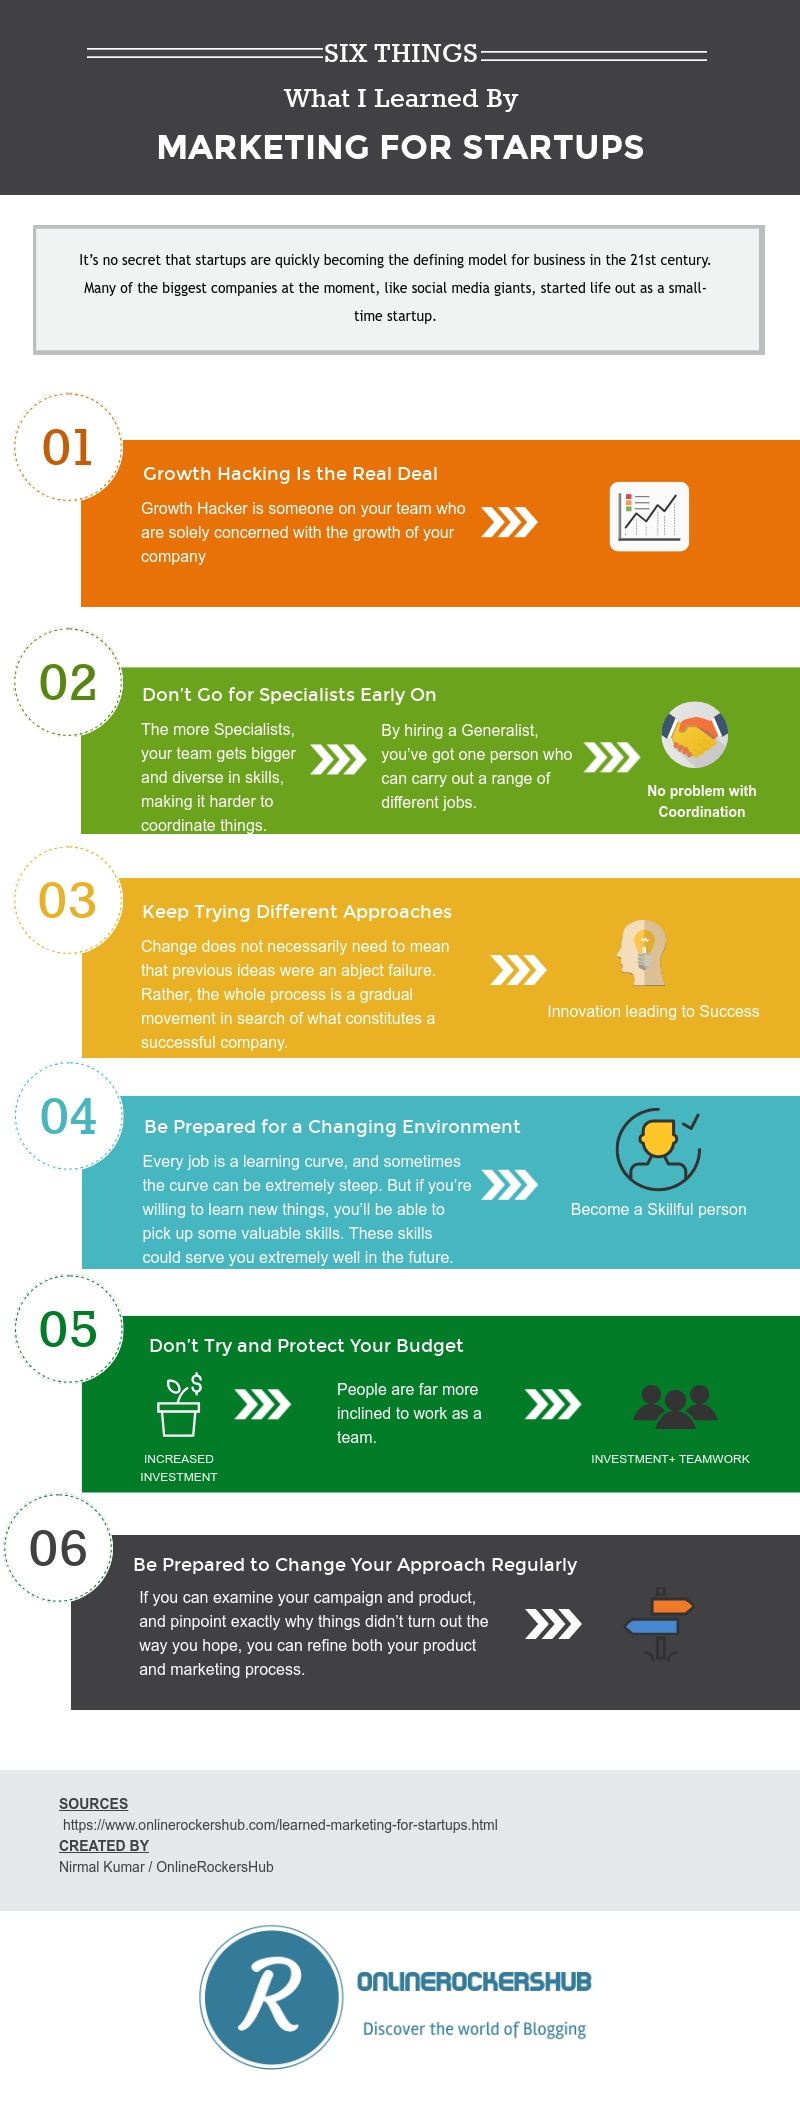 6 Things that I Learned by Marketing for Startups Infographic